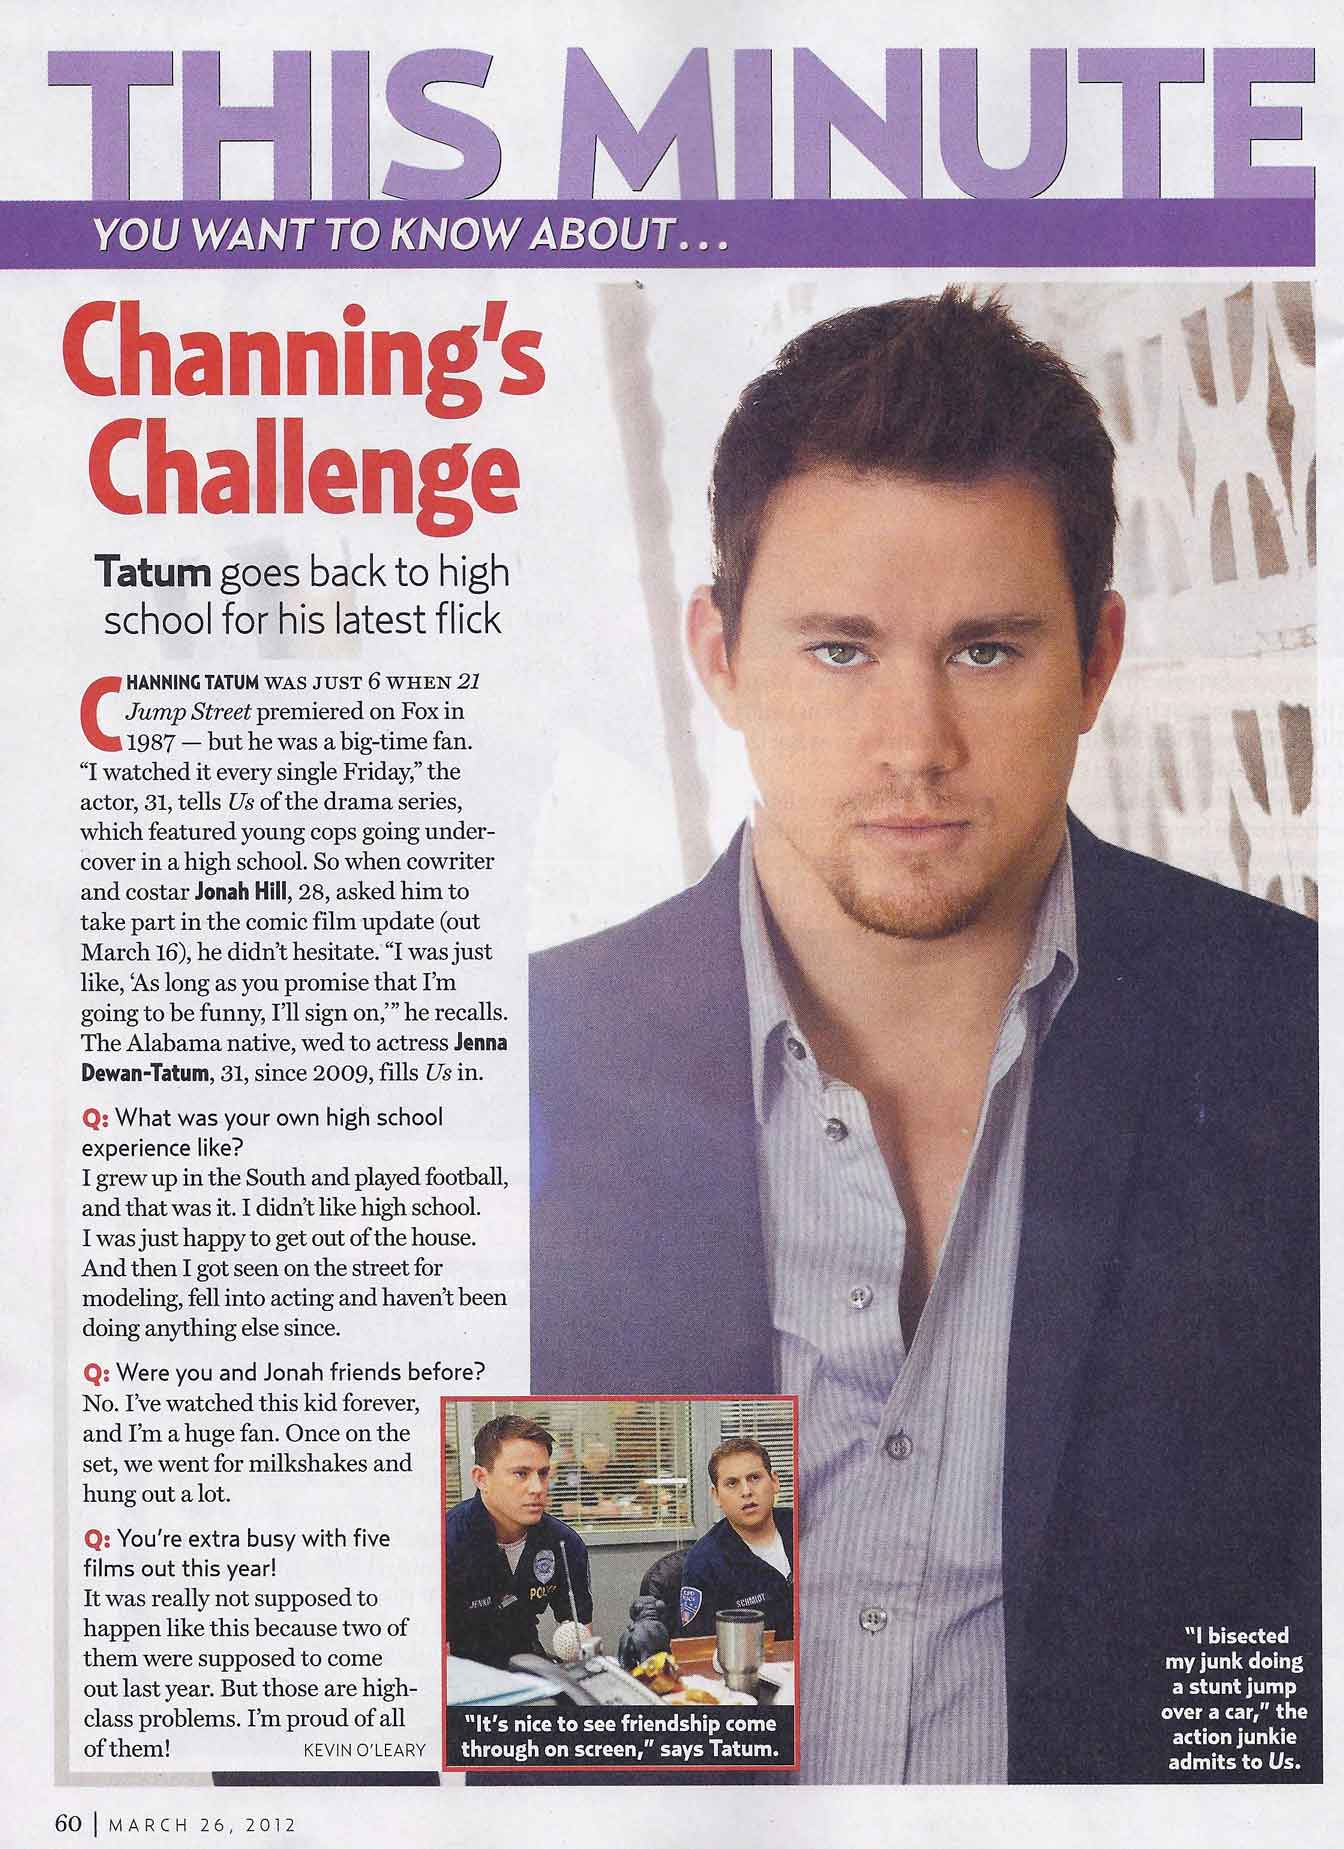 channing online dating News of actor channing tatum's death spread quickly earlier this week, causing concern among fans across the world however, the may 2018 report has now been confirmed as a complete hoax, the actor best known for his roles in magic mike, 21 jump street or the vow is alive and well.